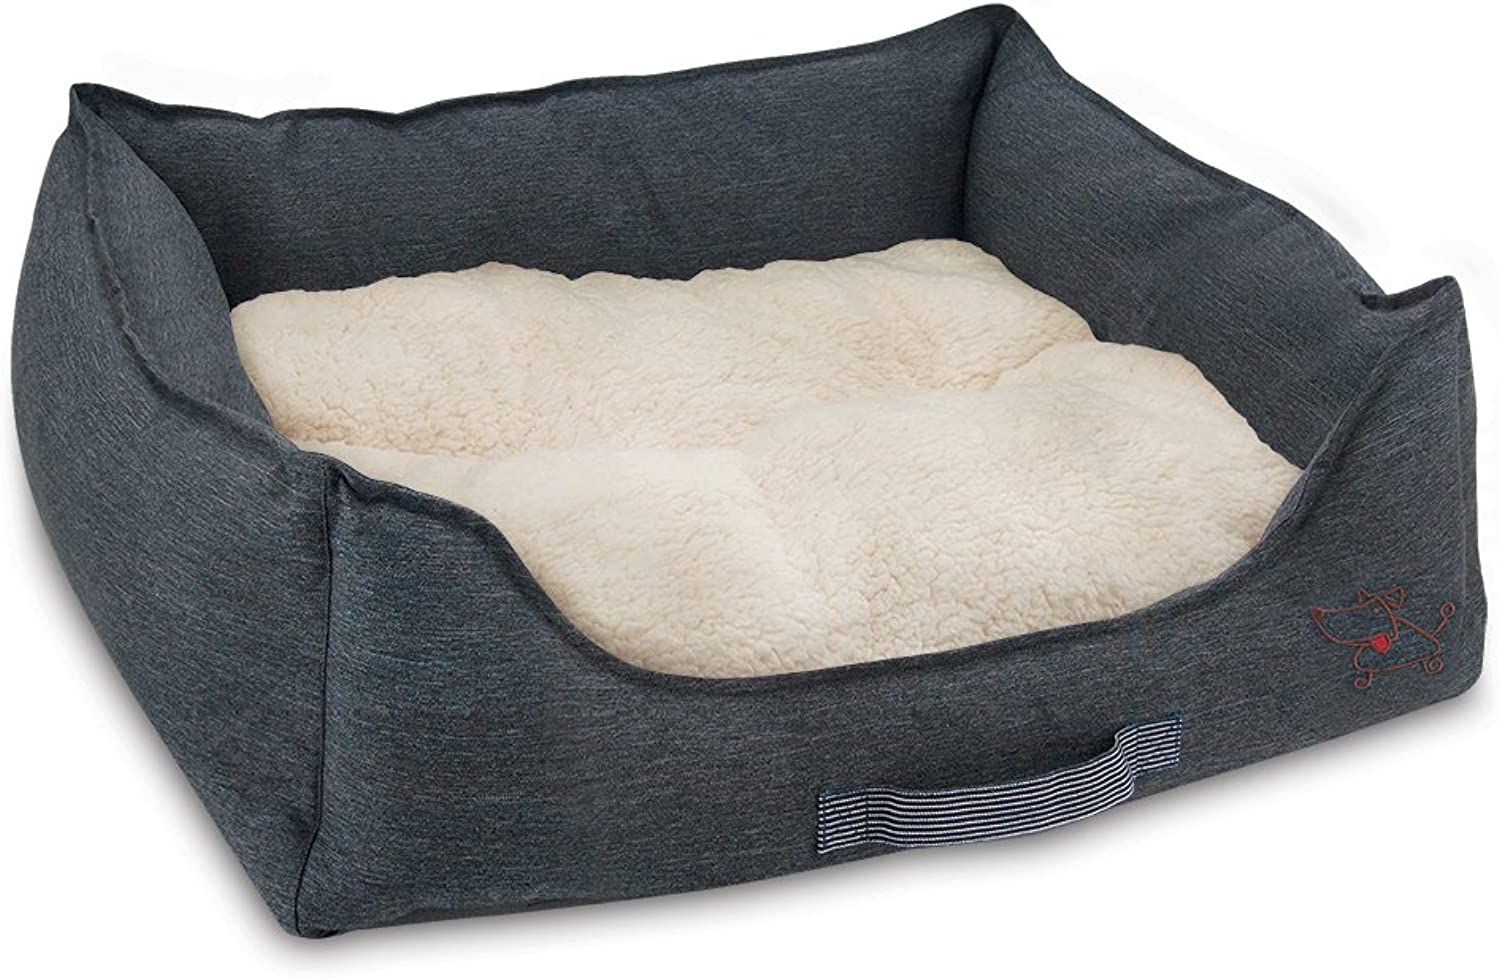 Best Pet Supplies Premium Oxford Polyester Filled Plush Bed, Large